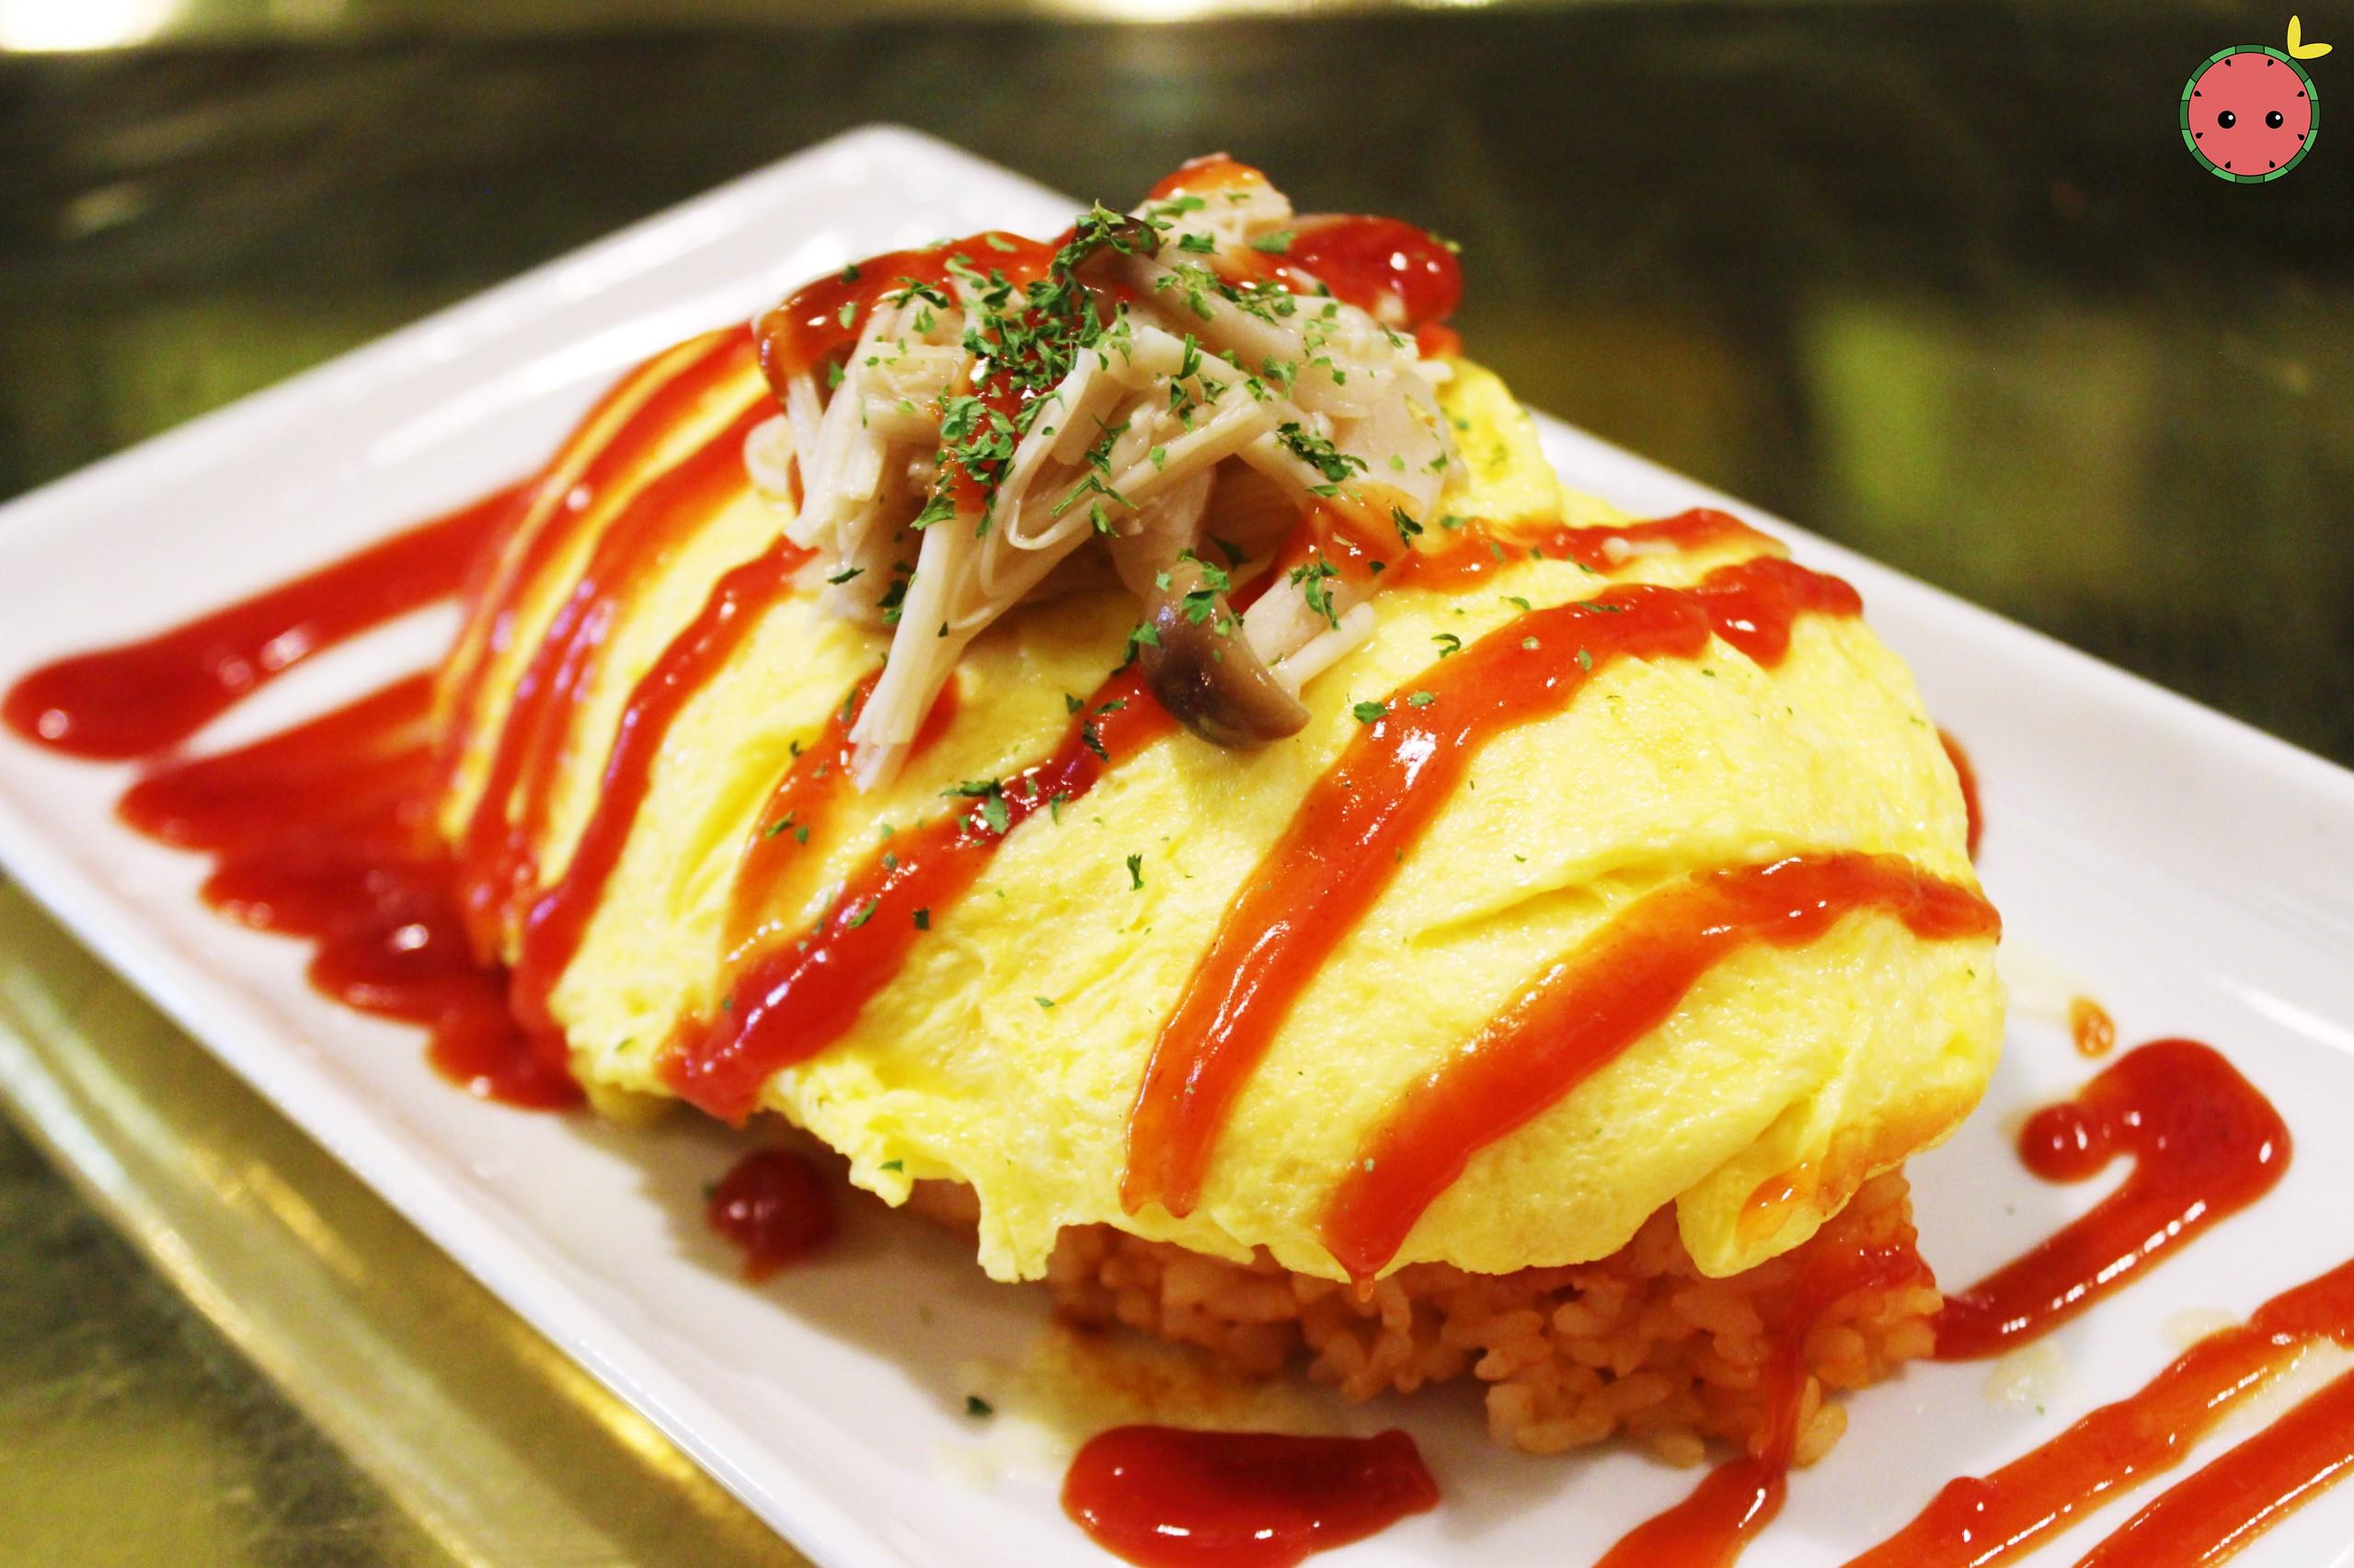 Omurice - Fluffy omelet with tomato sauce-seasoned pork rice with kinko mushrooms and melted cheese